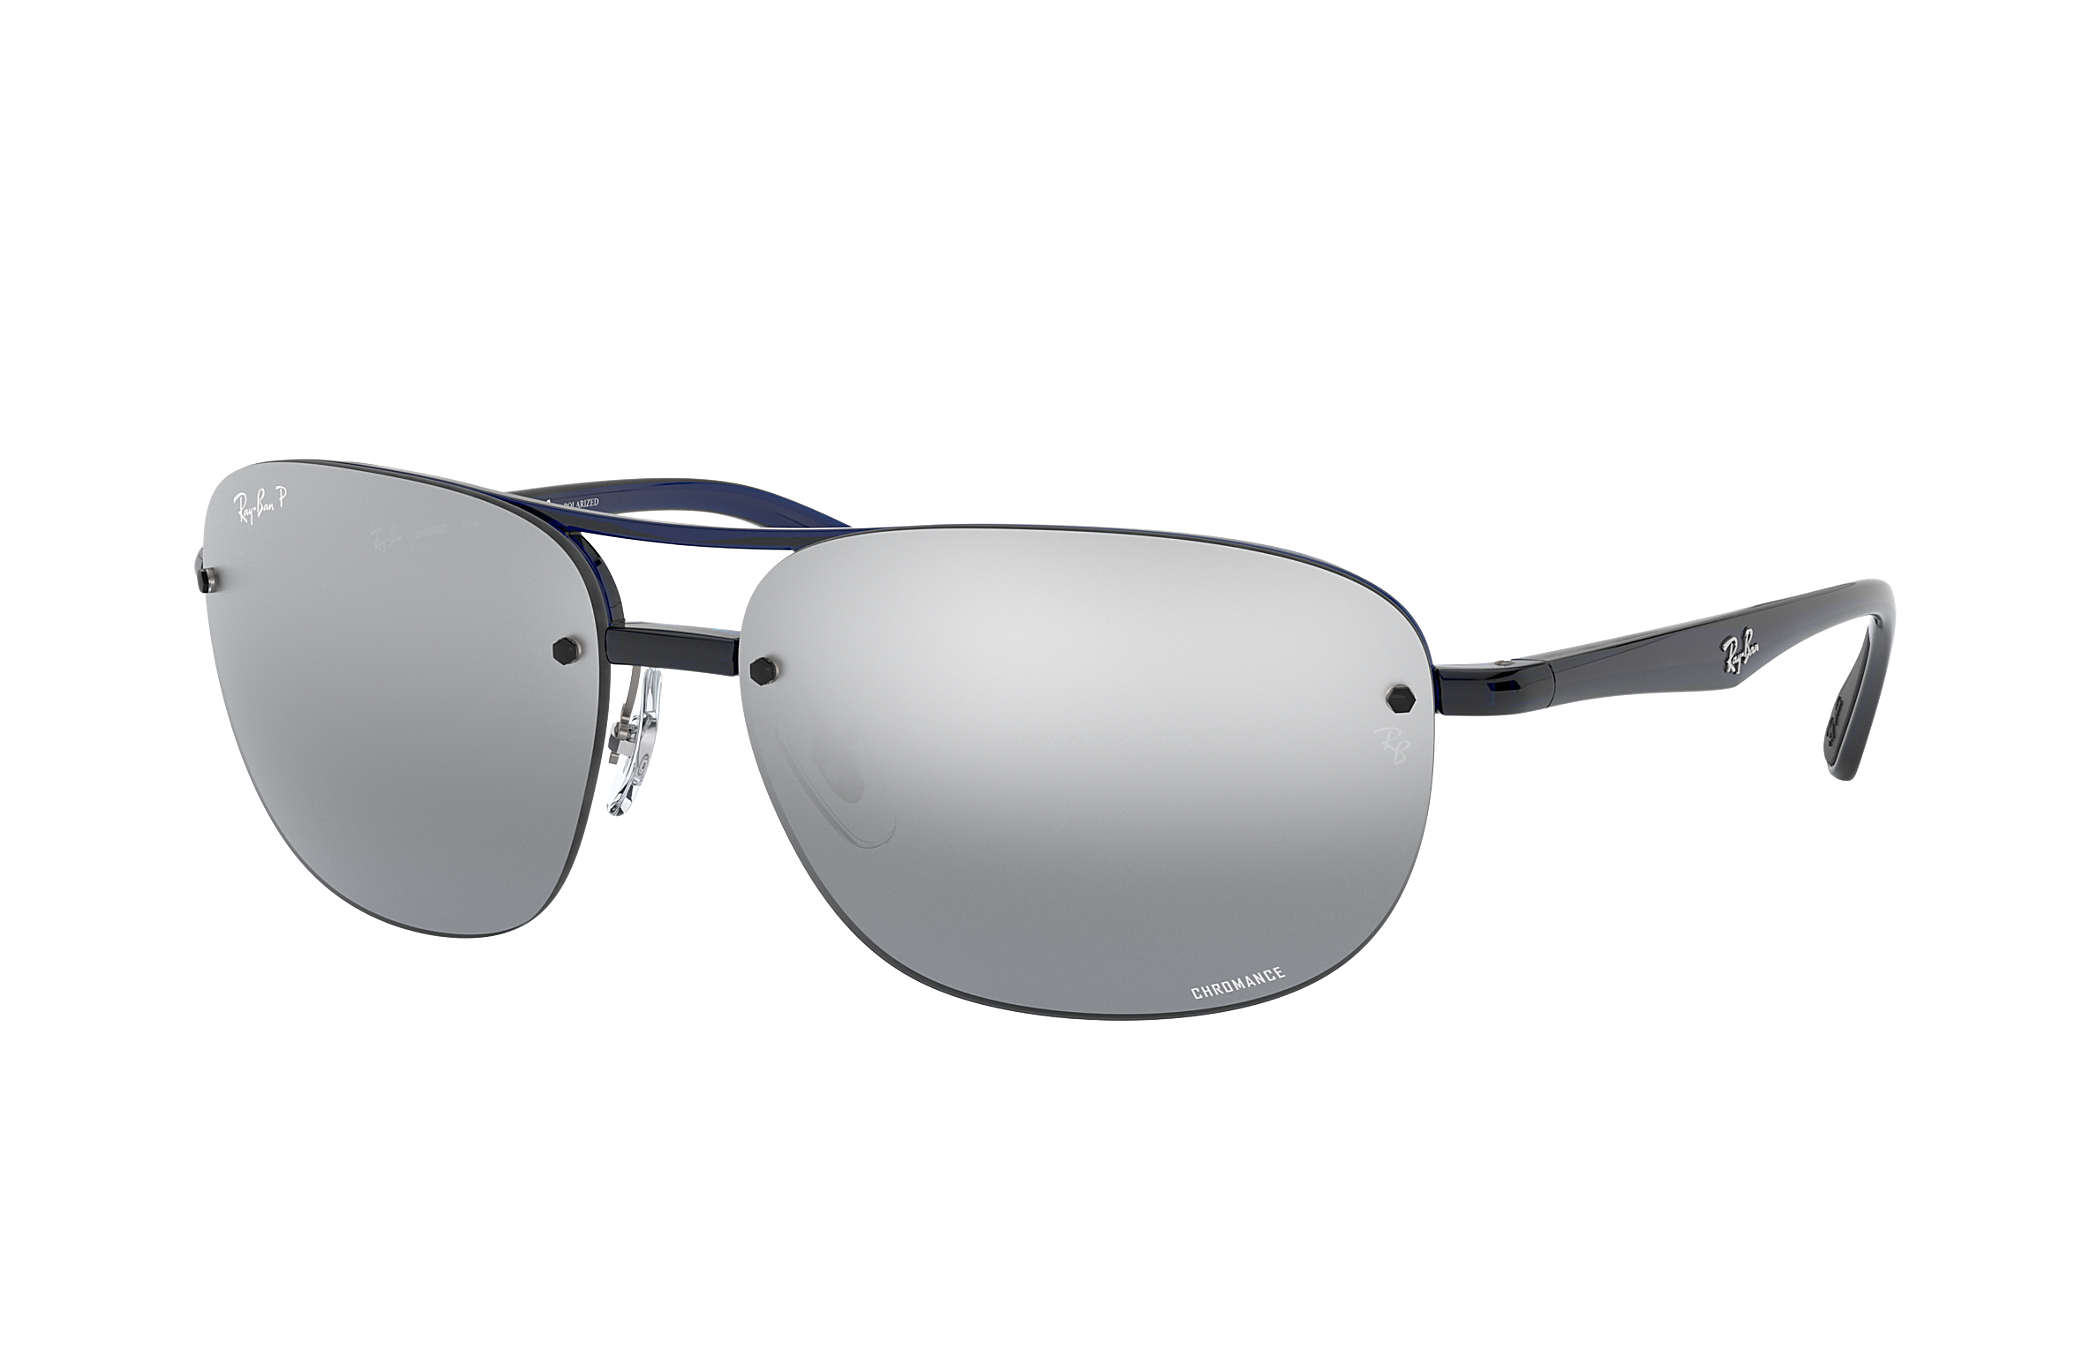 a92dbd5321 Ray-Ban Rb4275 Chromance RB4275CH Blue - Nylon - Grey Polarized ...